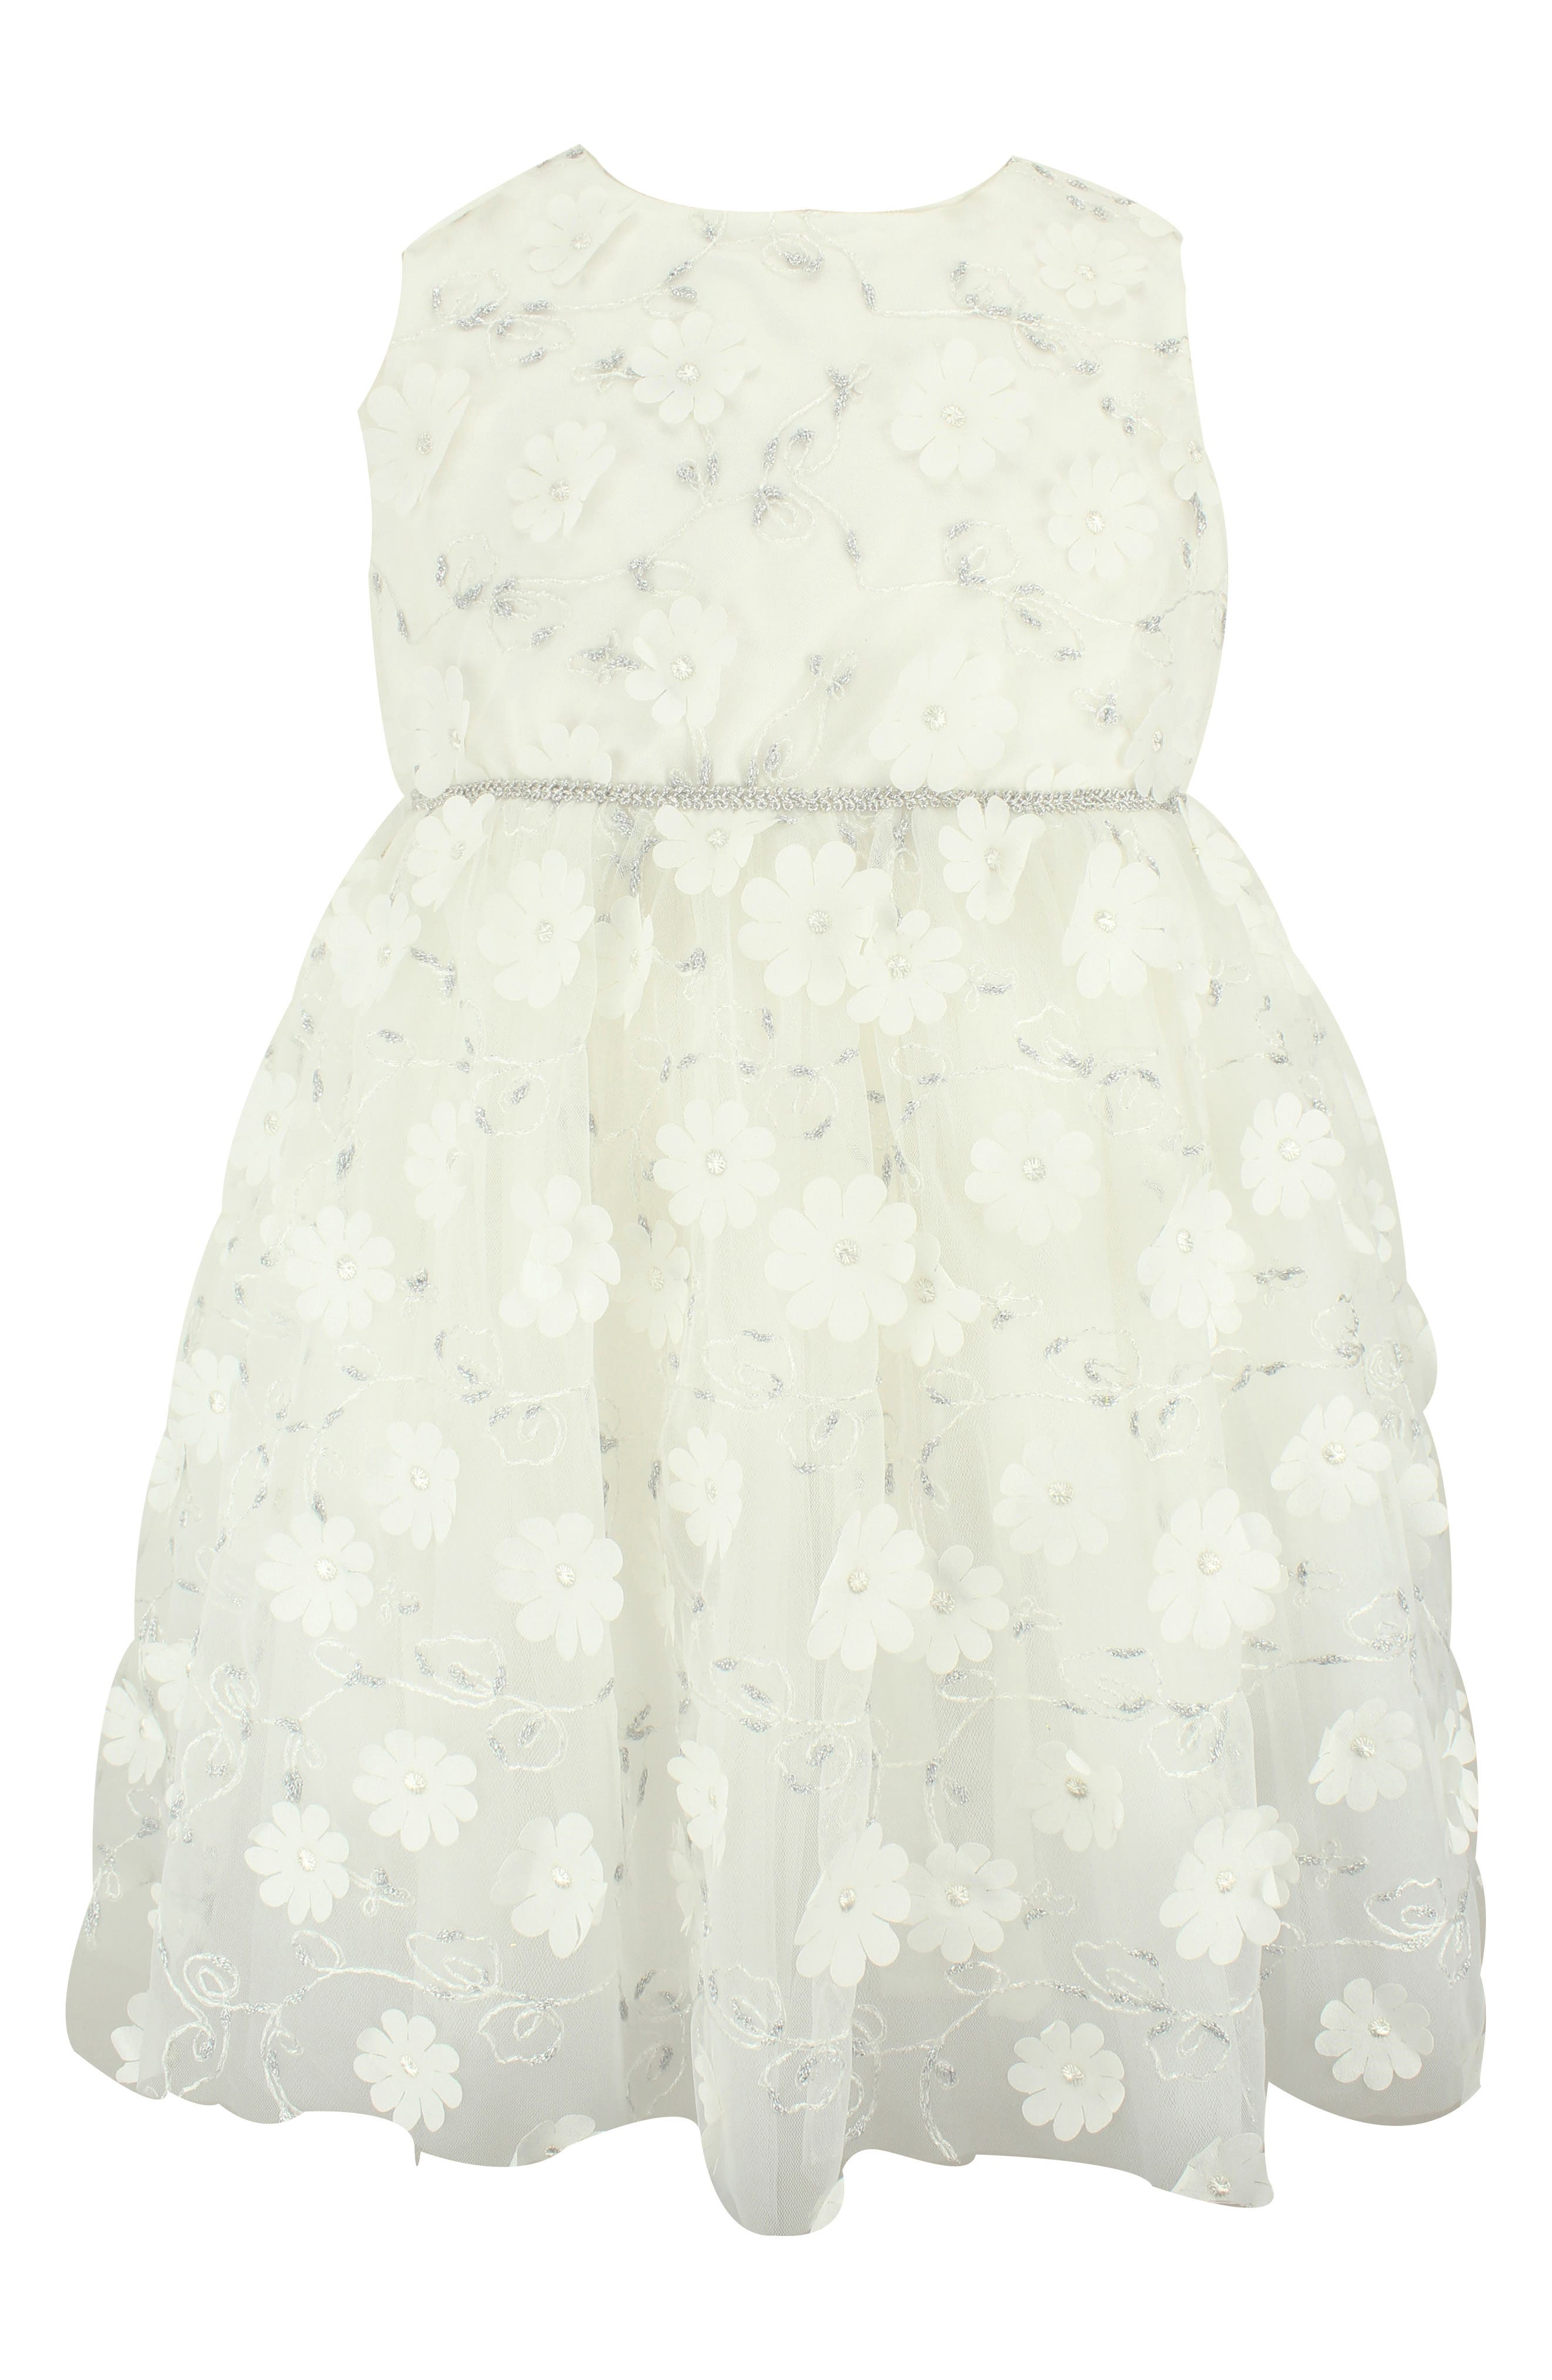 Floral & Metallic Embroidery Tulle Dress,                             Main thumbnail 1, color,                             WHITE